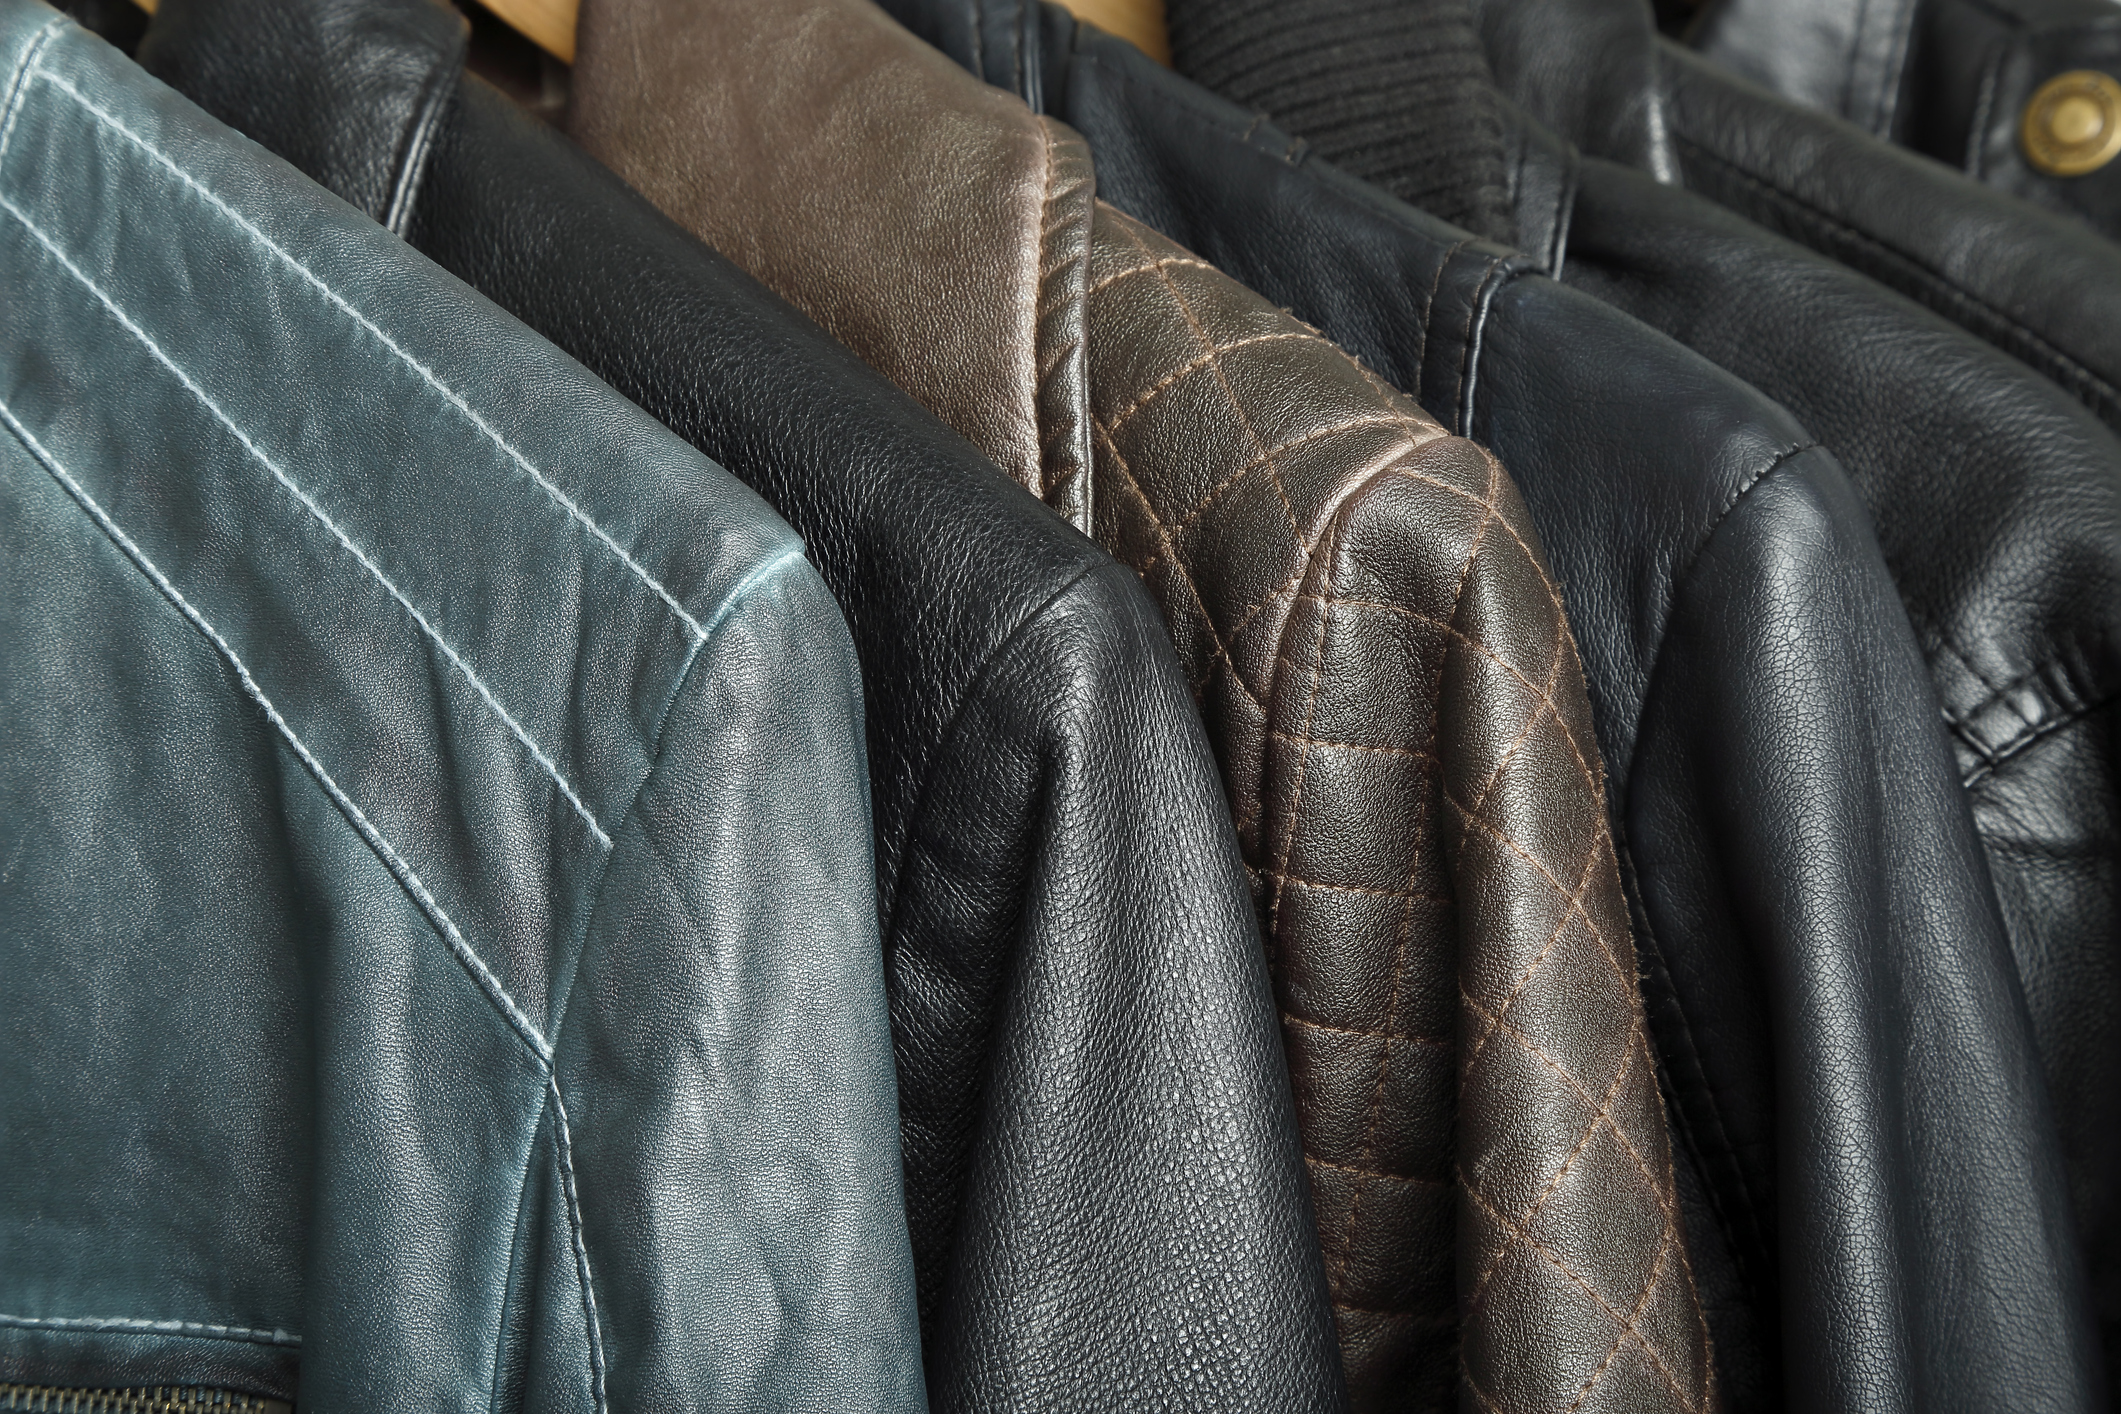 row of leather jackets